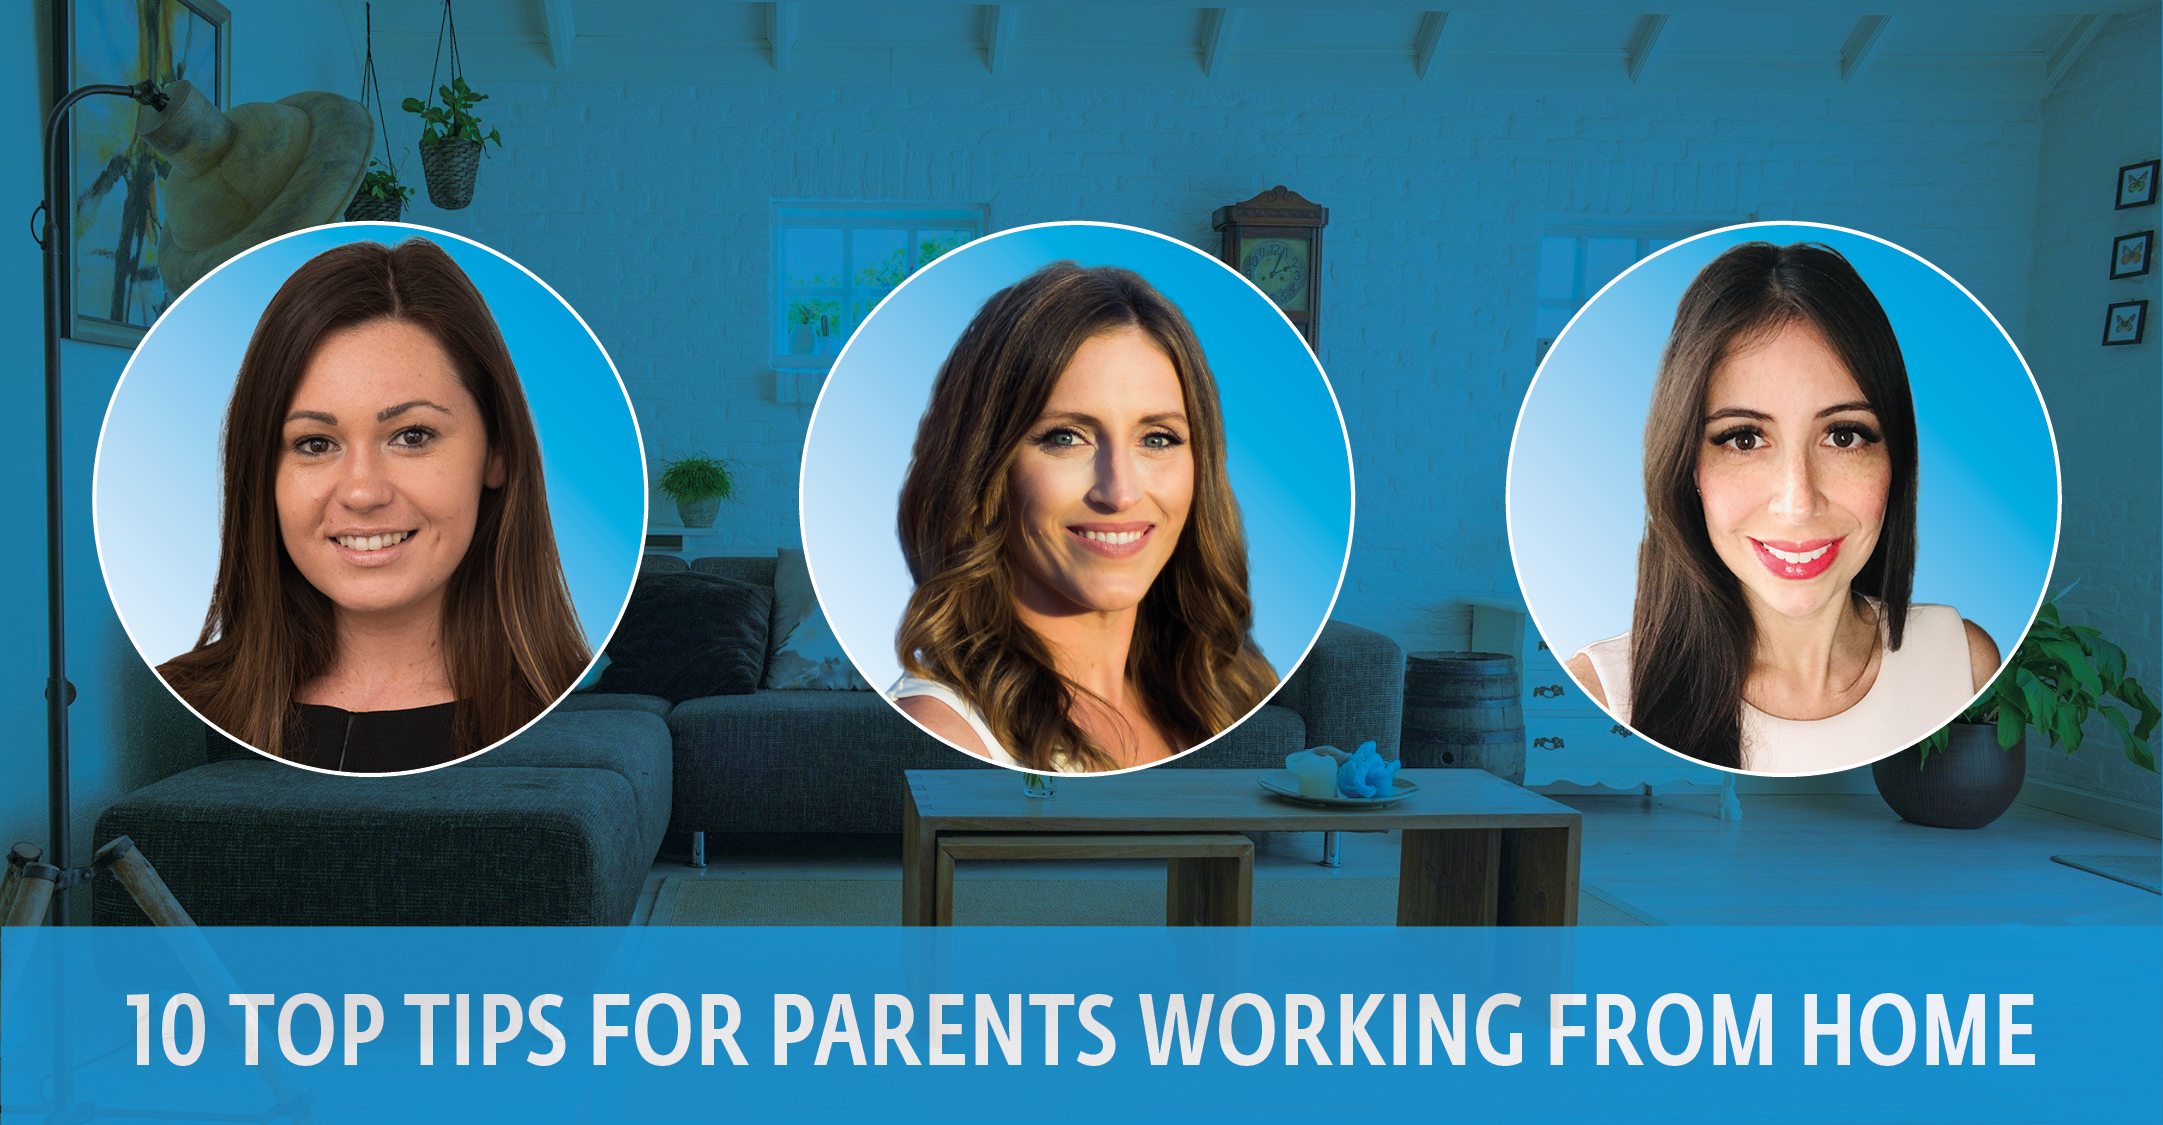 10 top tips for parents working from home